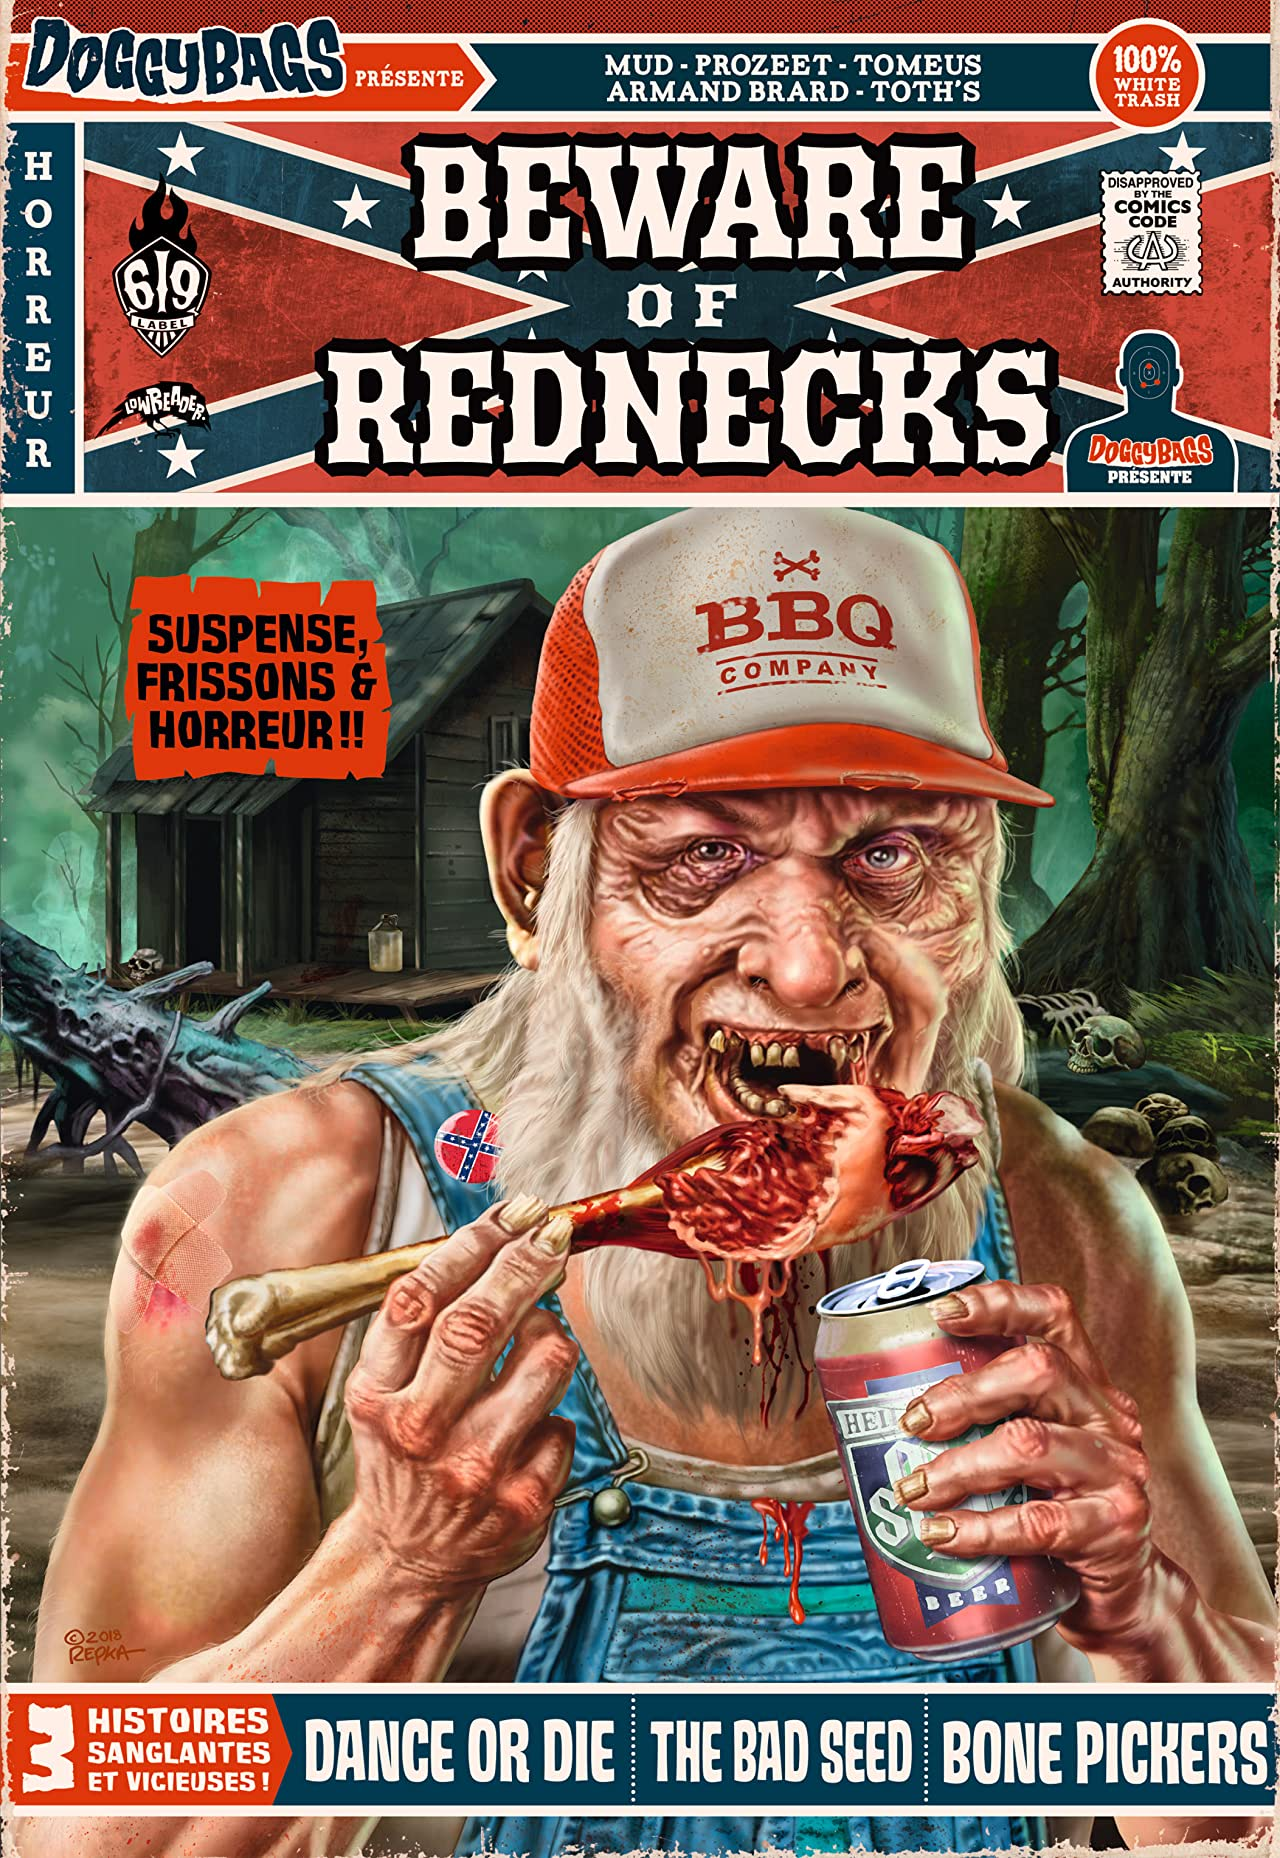 DoggyBags Présente Vol. 3: Beware of Rednecks